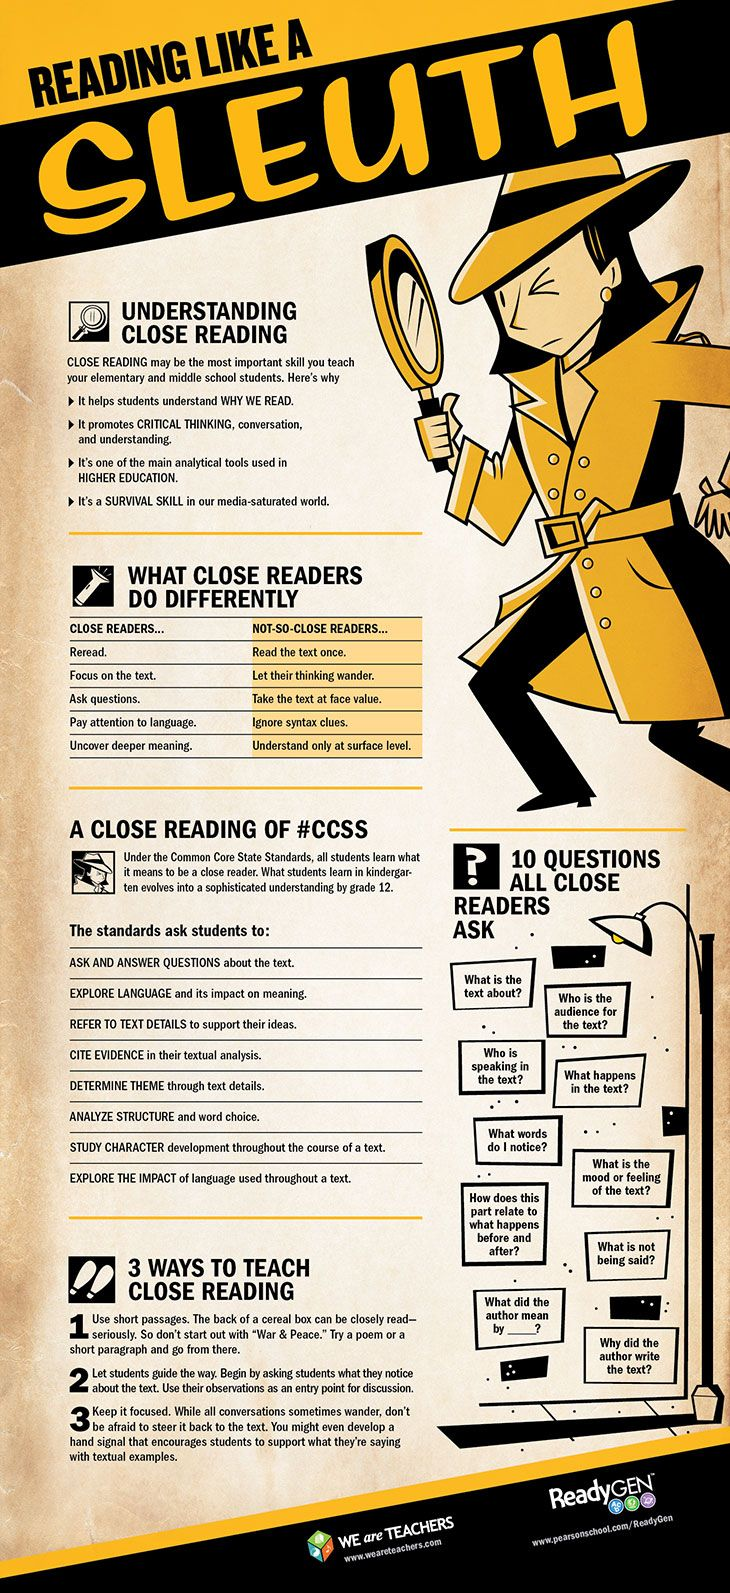 A Beautiful Classroom Poster on Close Reading ~ Educational Technology and Mobile Learning